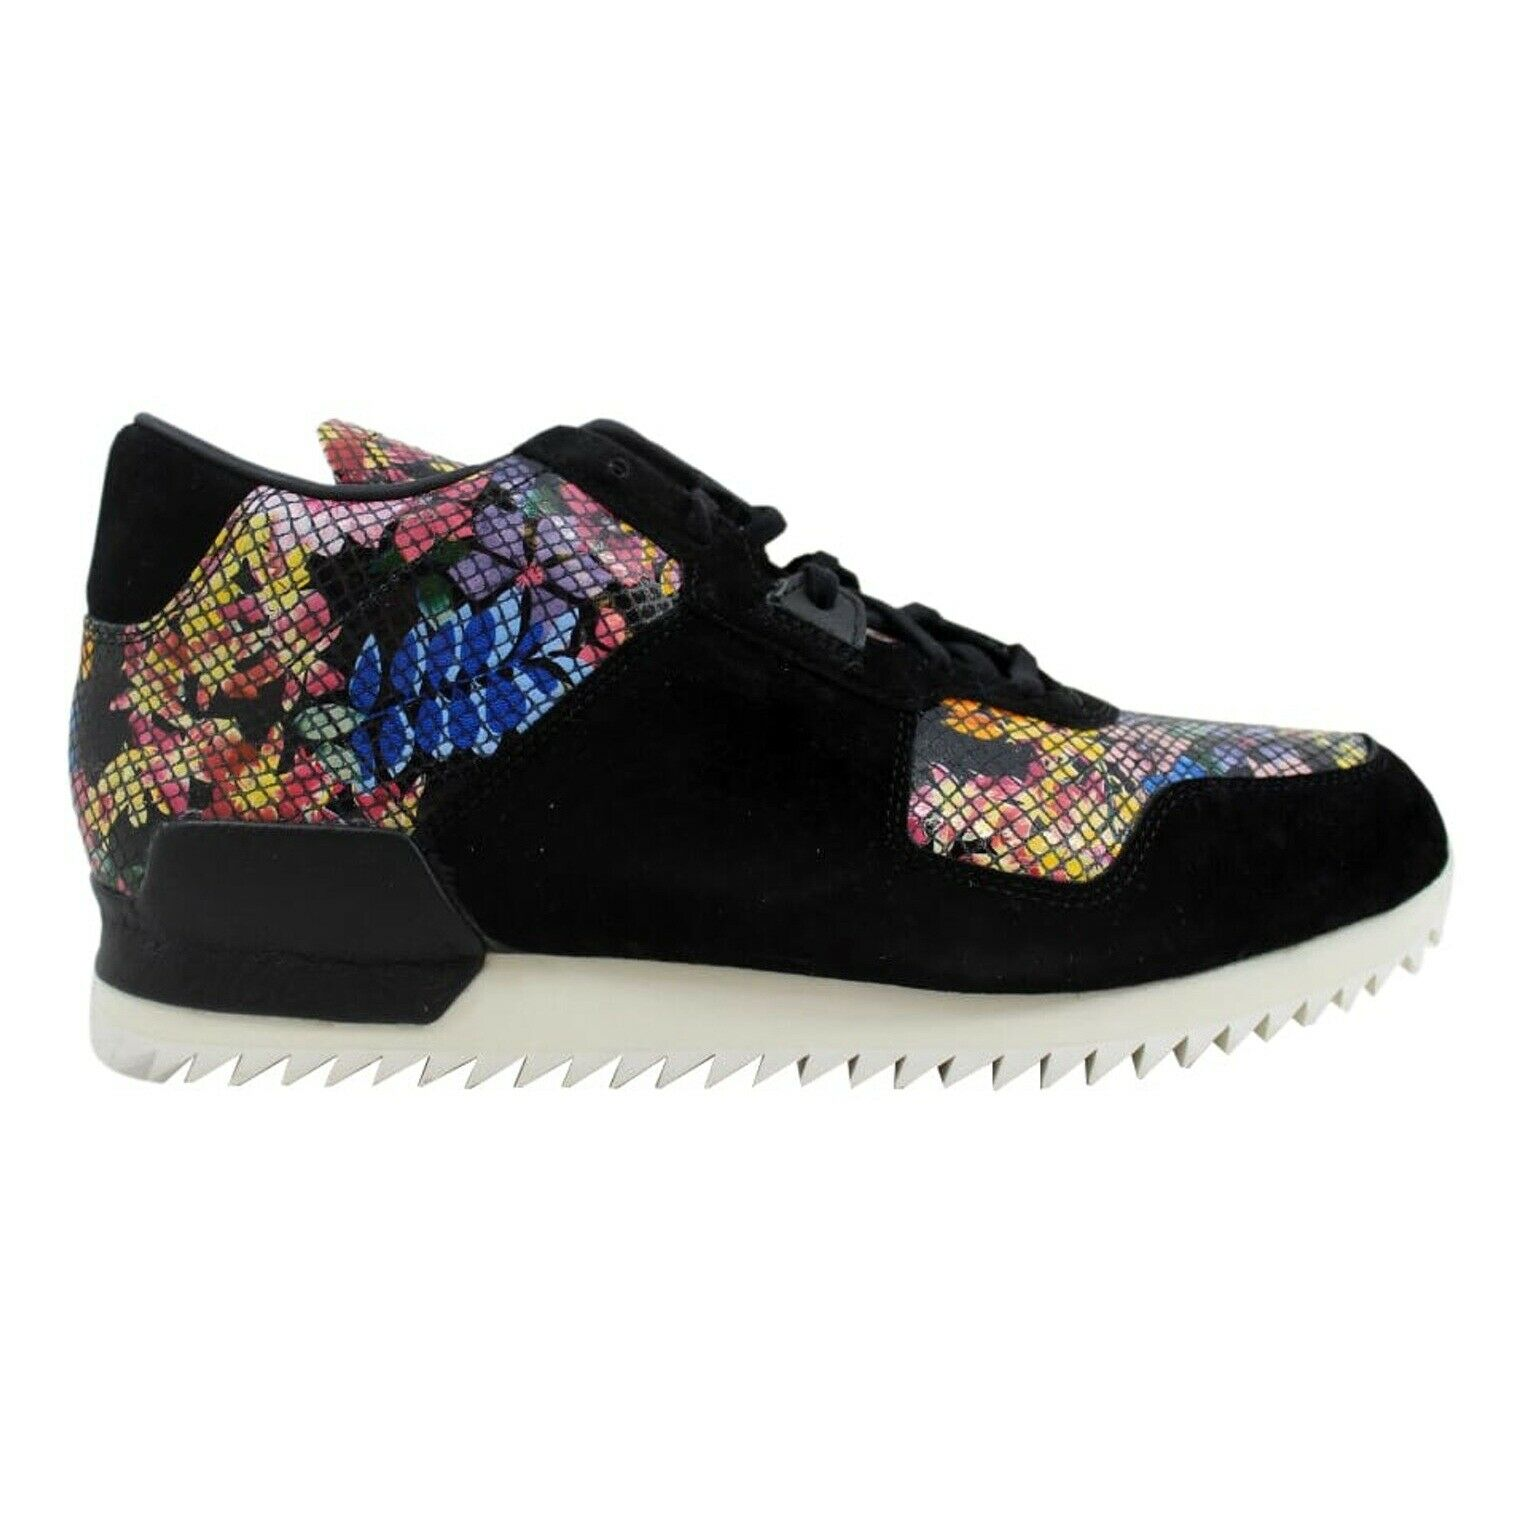 Adidas ZX 700 Remastered Black White S82518 Mens Casual Sneakers